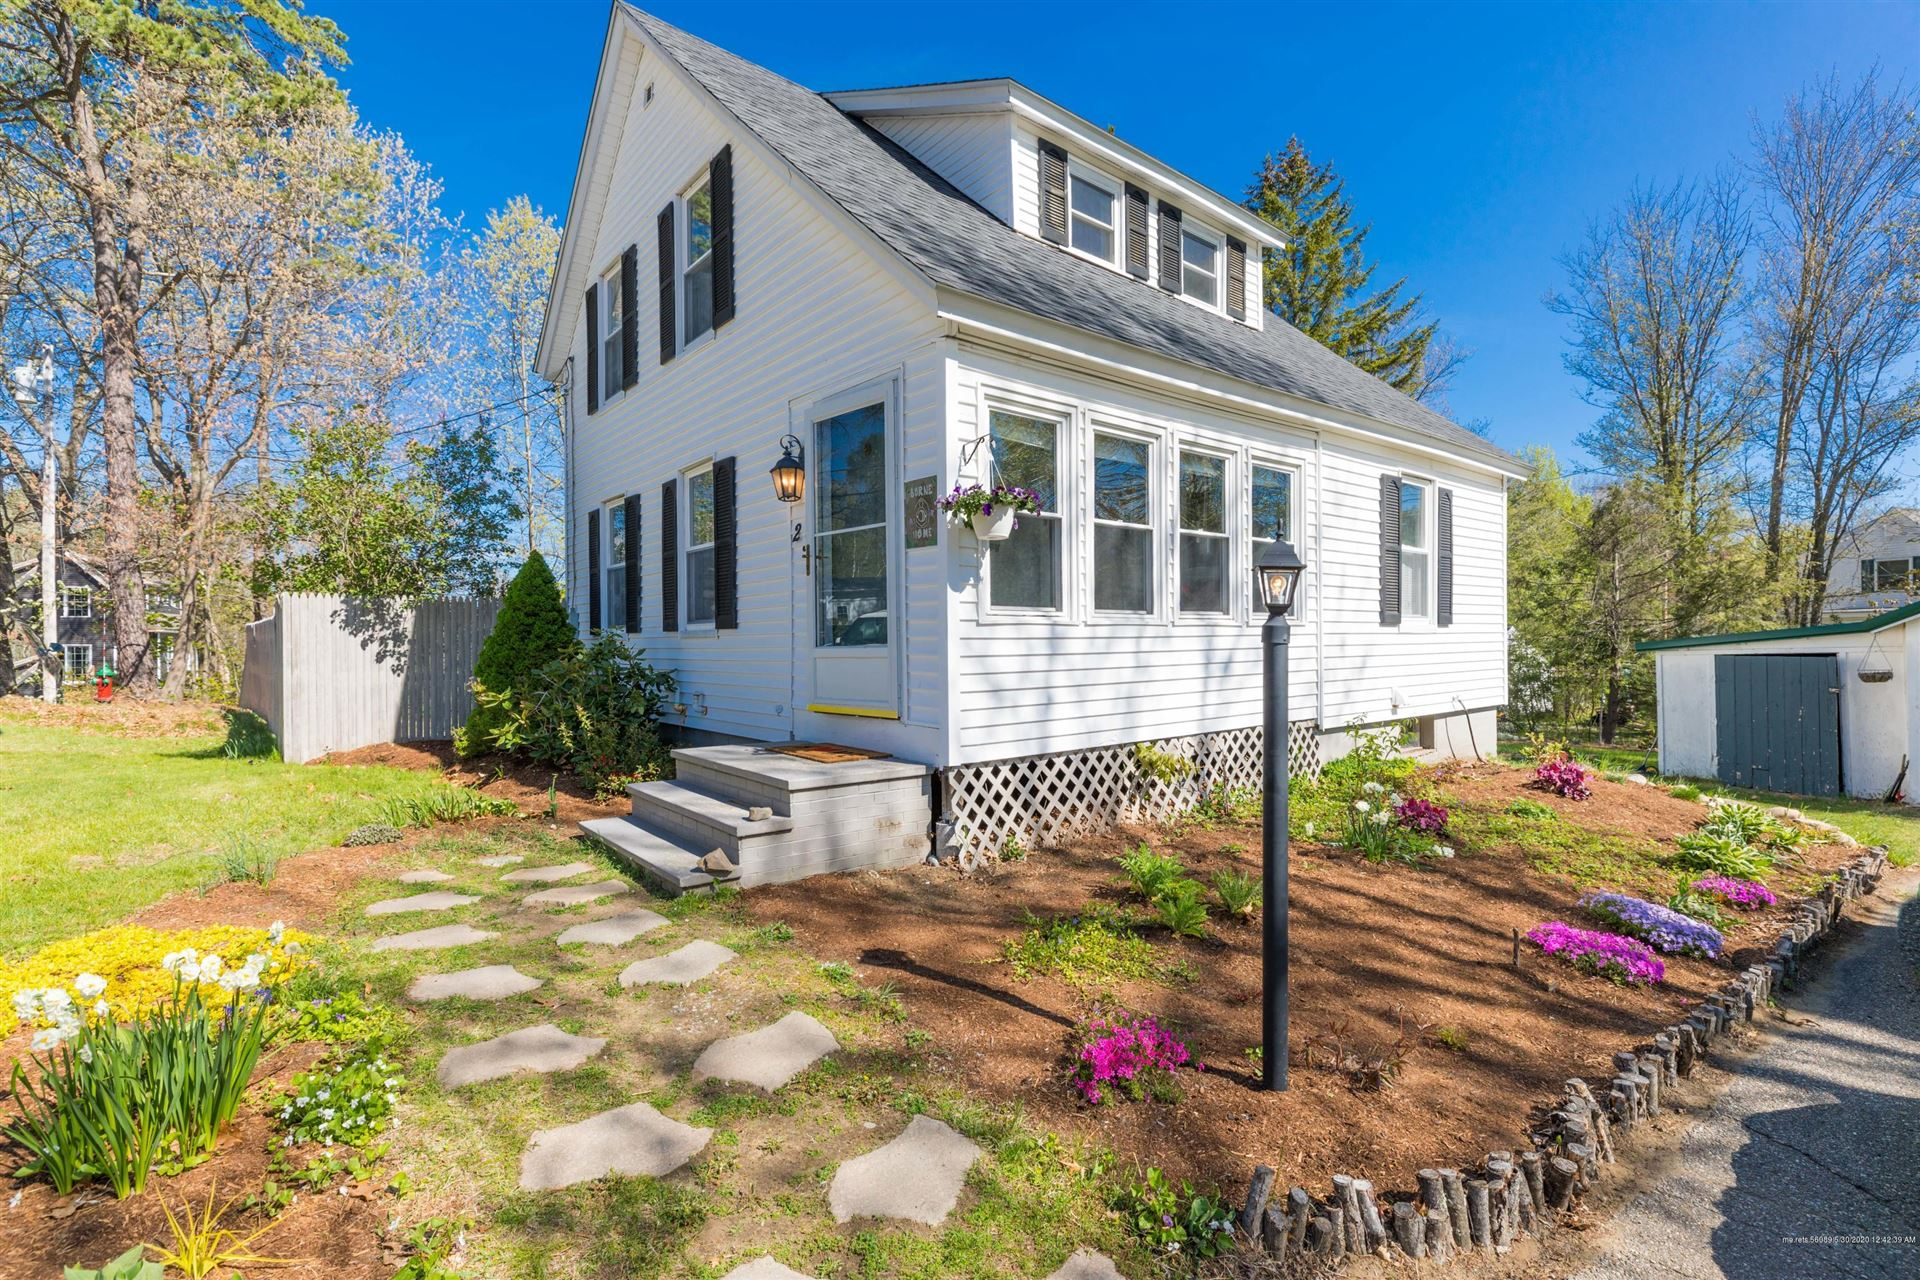 Photo of 23 Morse Street, Berwick, ME 03901 (MLS # 1454149)